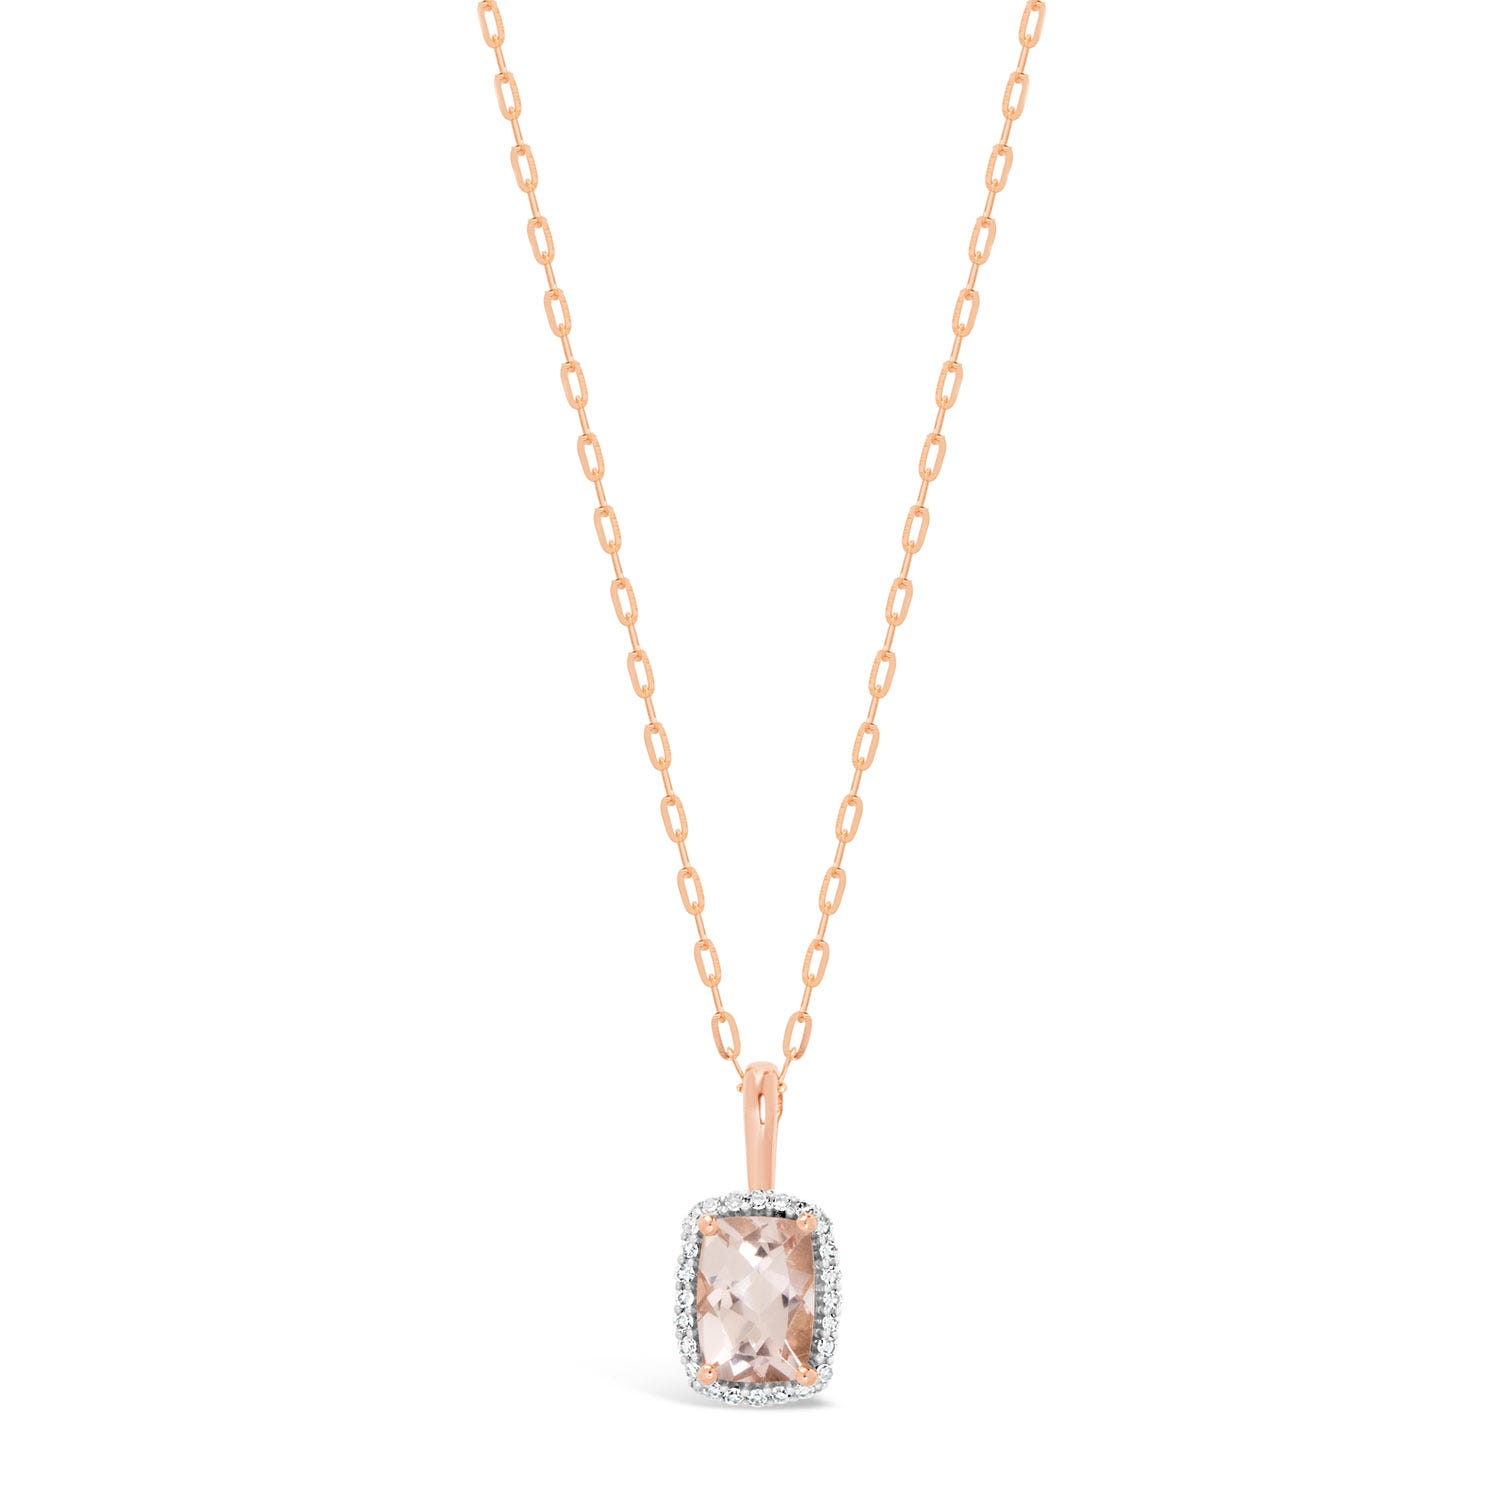 Ladies 9ct Rose Gold Rectangular Morganite 0.07 Carat Diamond Halo Pendant Necklace